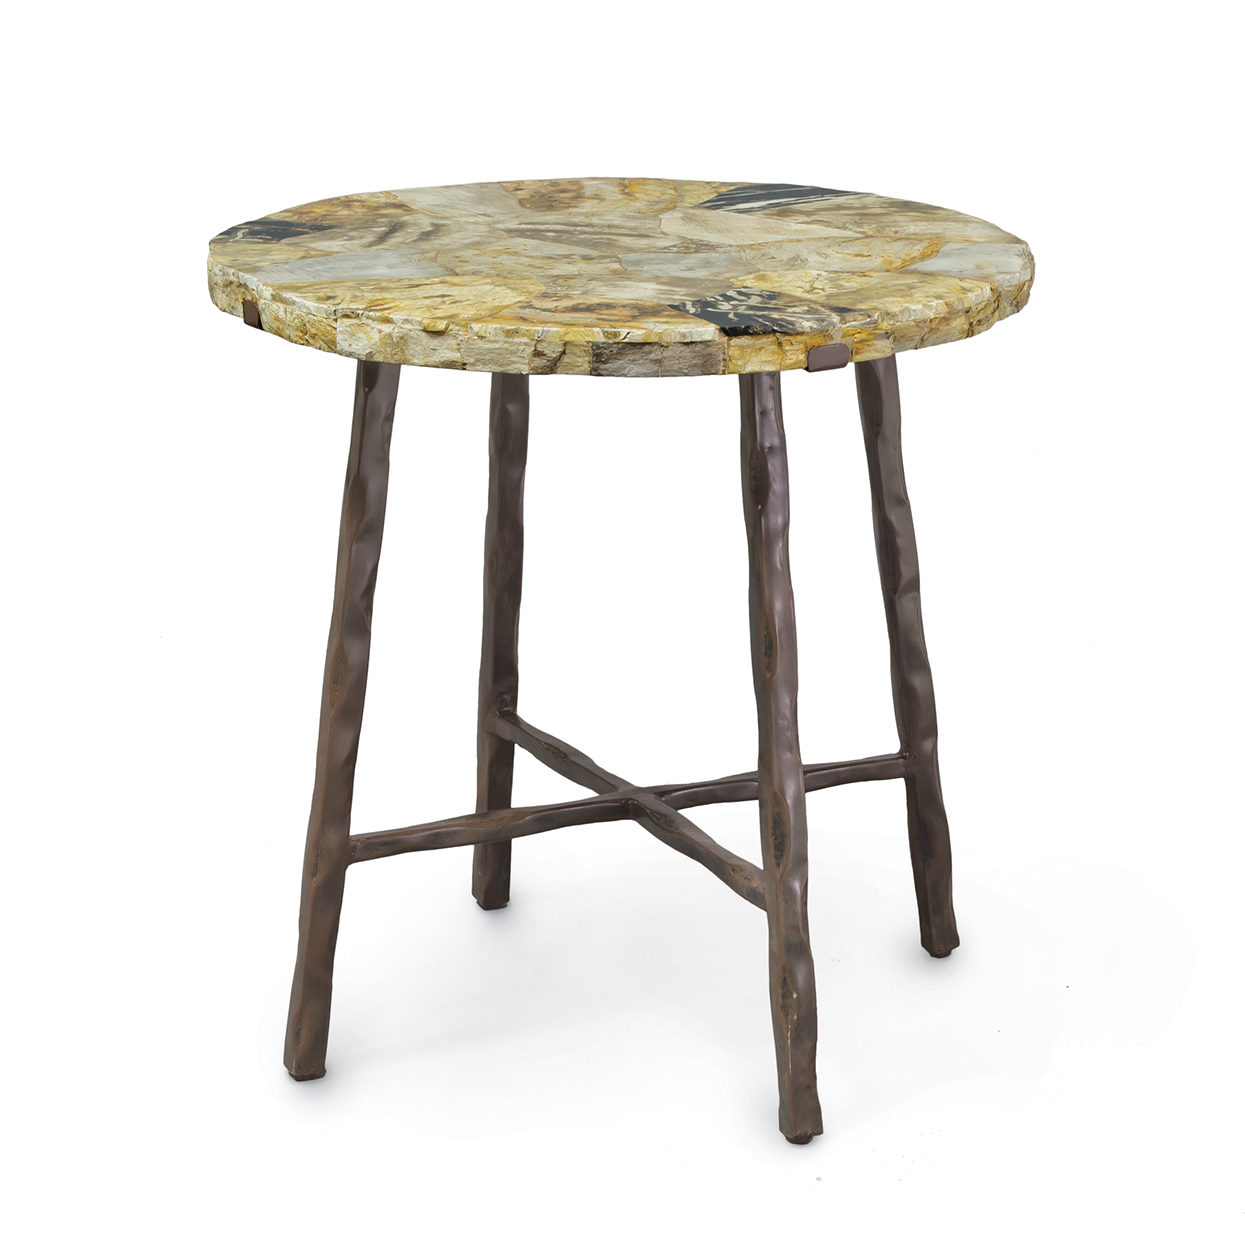 petrified wood dining table janice minor tables solid accent vintage inspired couch side ideas for living room bronze and glass yellow white contemporary coffee black metal lamp